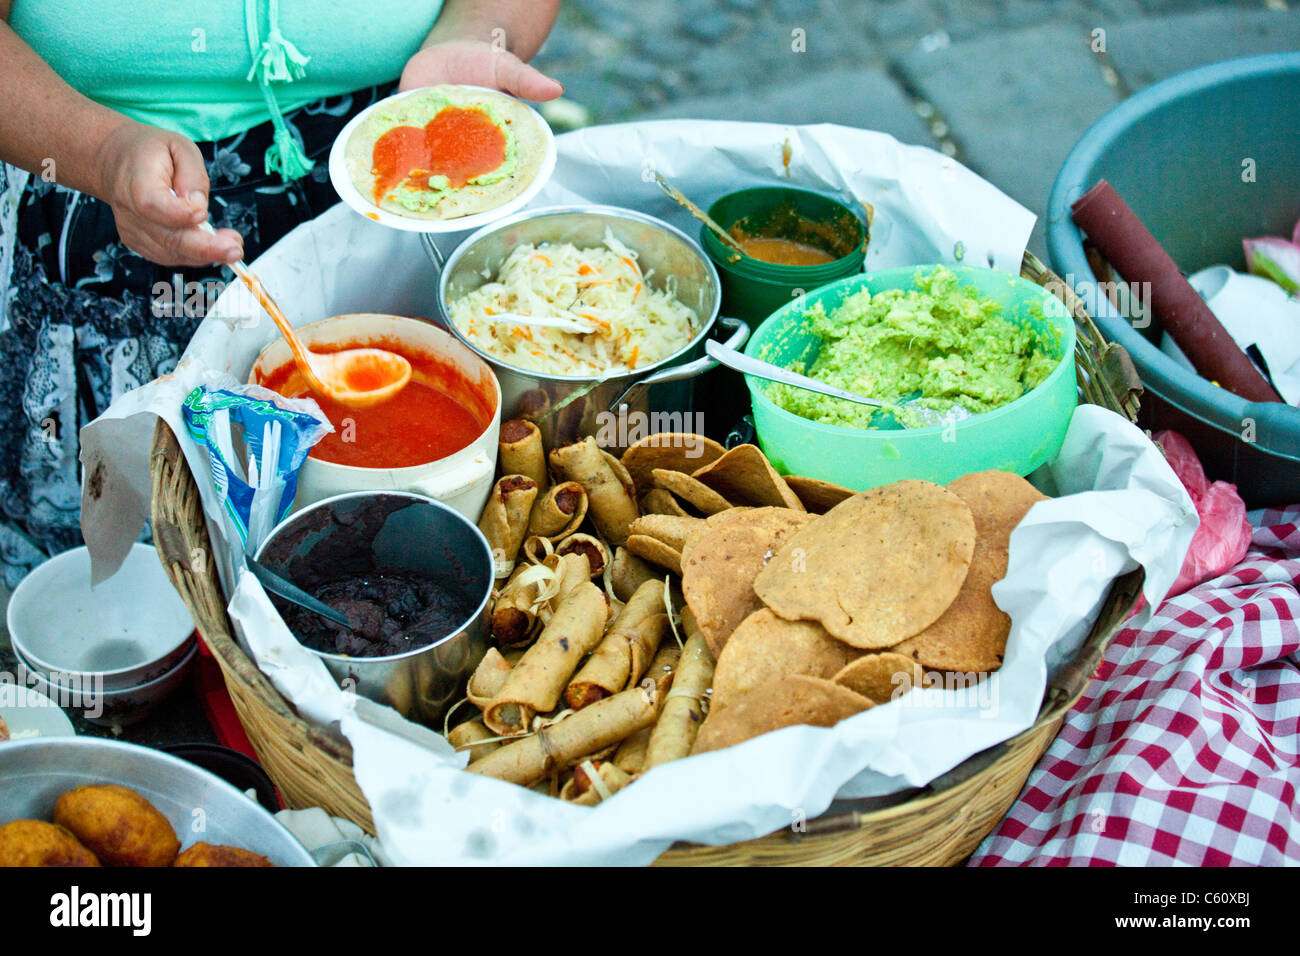 Street food, Antigua, Guatemala - Stock Image